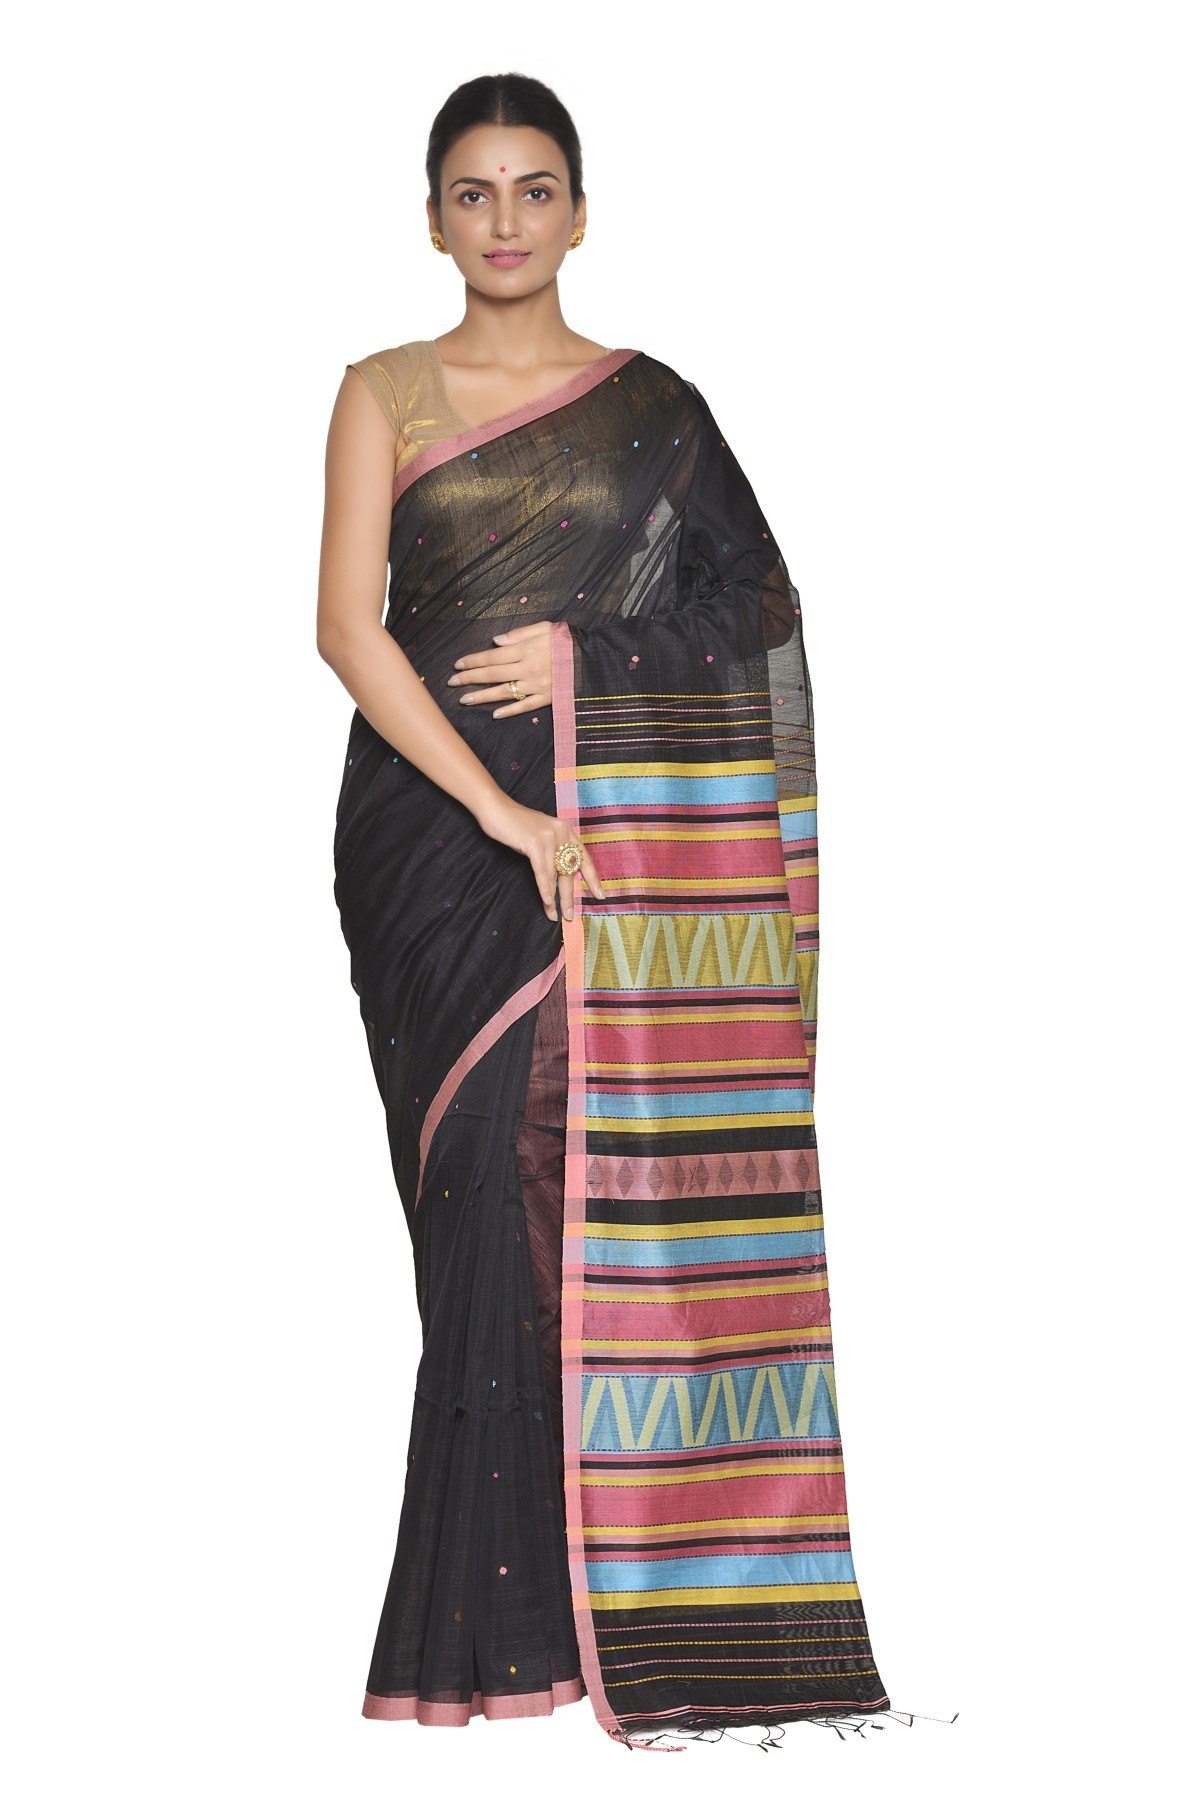 Handwoven Indian sarees online shopping - Dinghy Exclusives